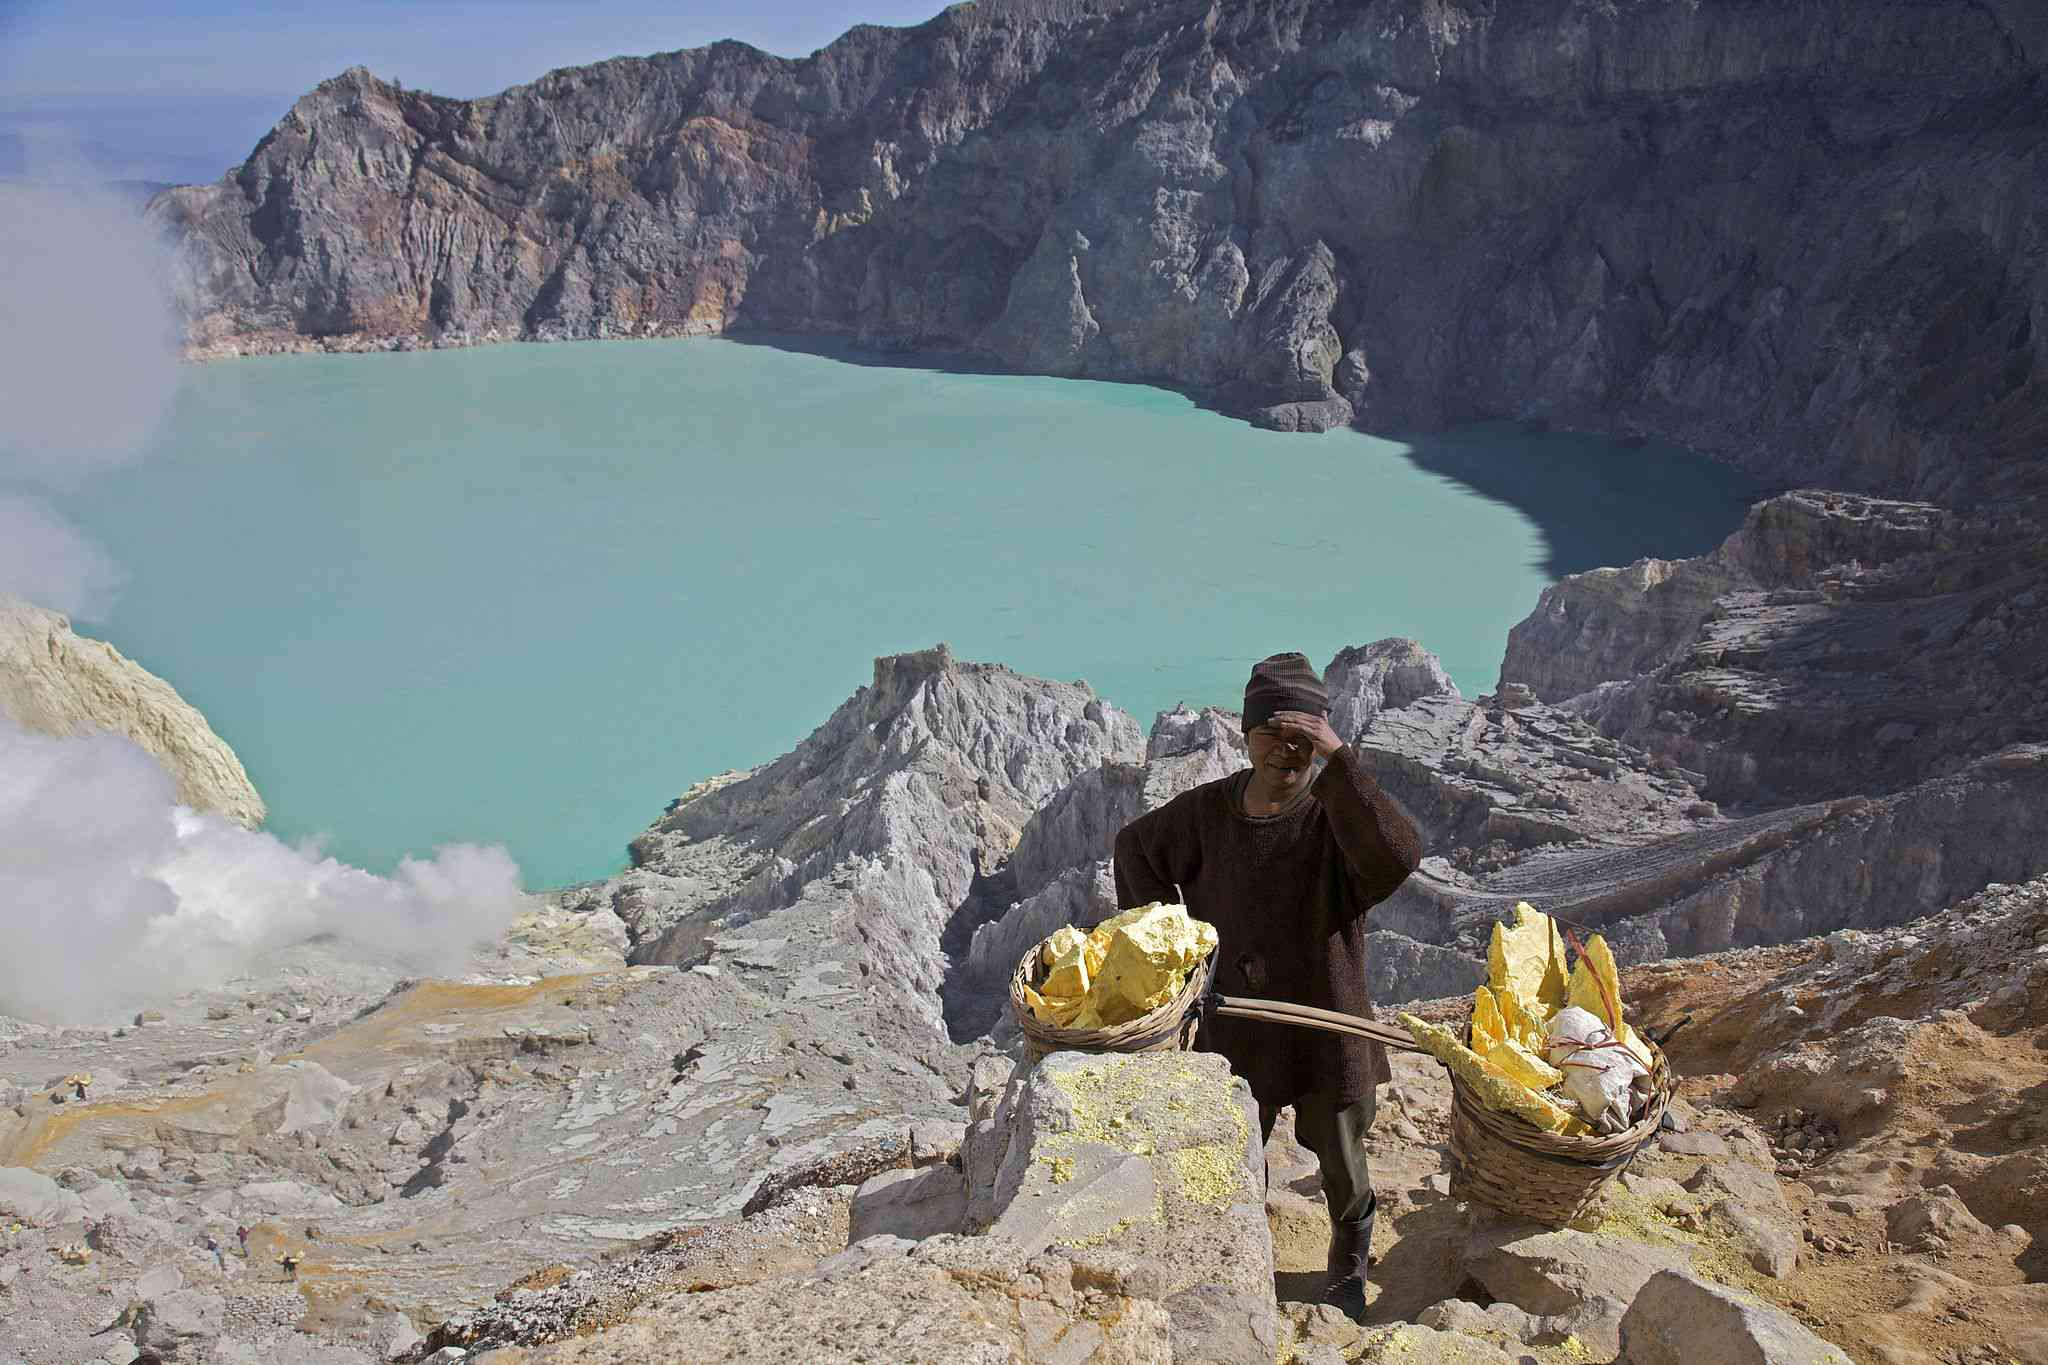 a man mines sulfur in Indonesia